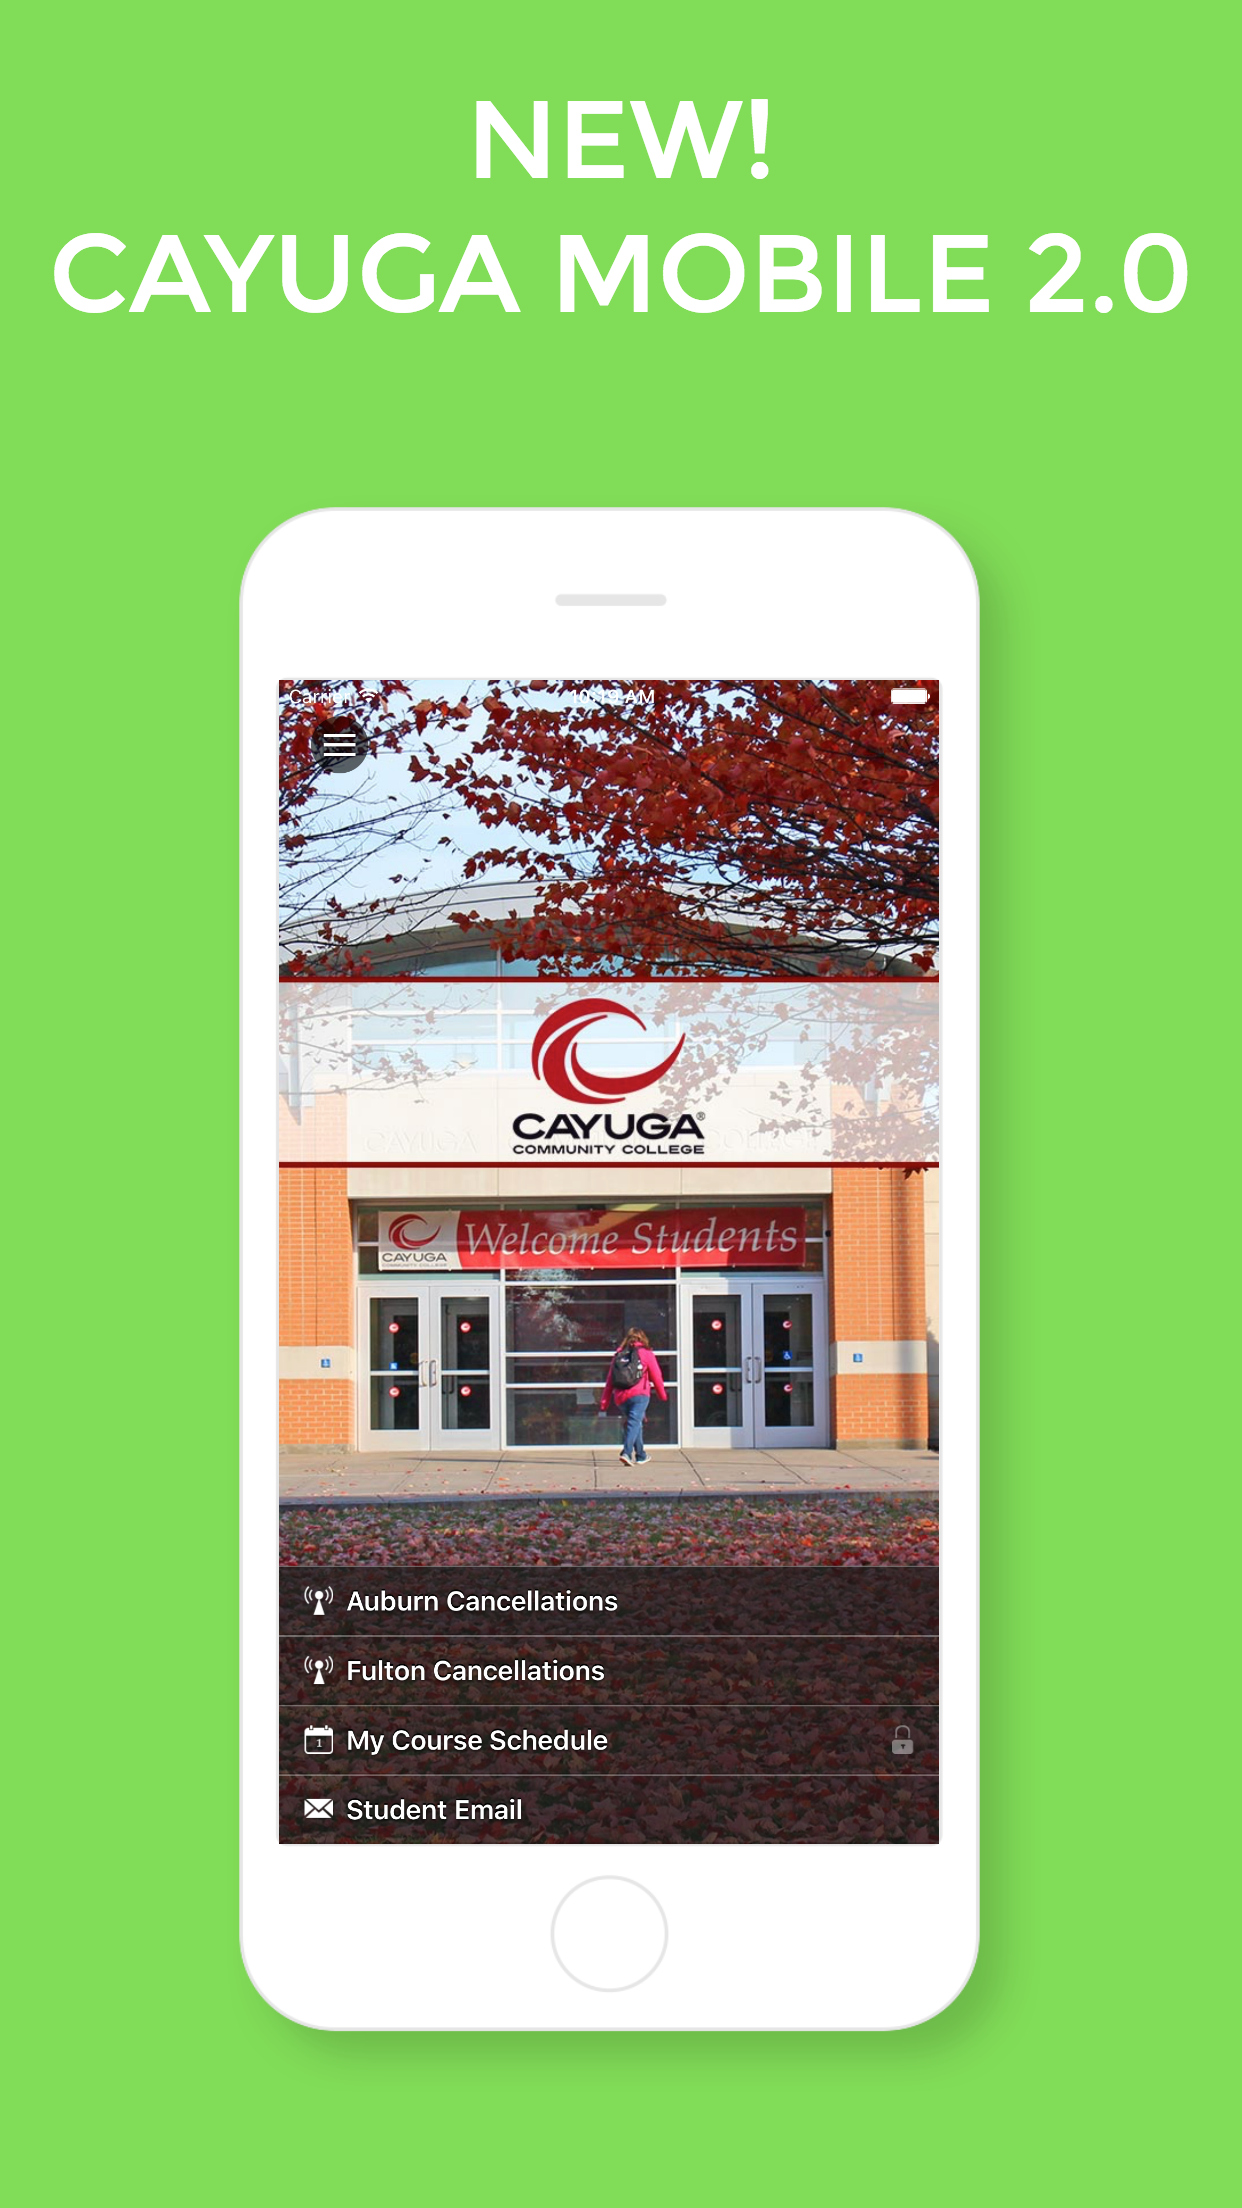 Announcing the new Cayuga Mobile application, version 2.0